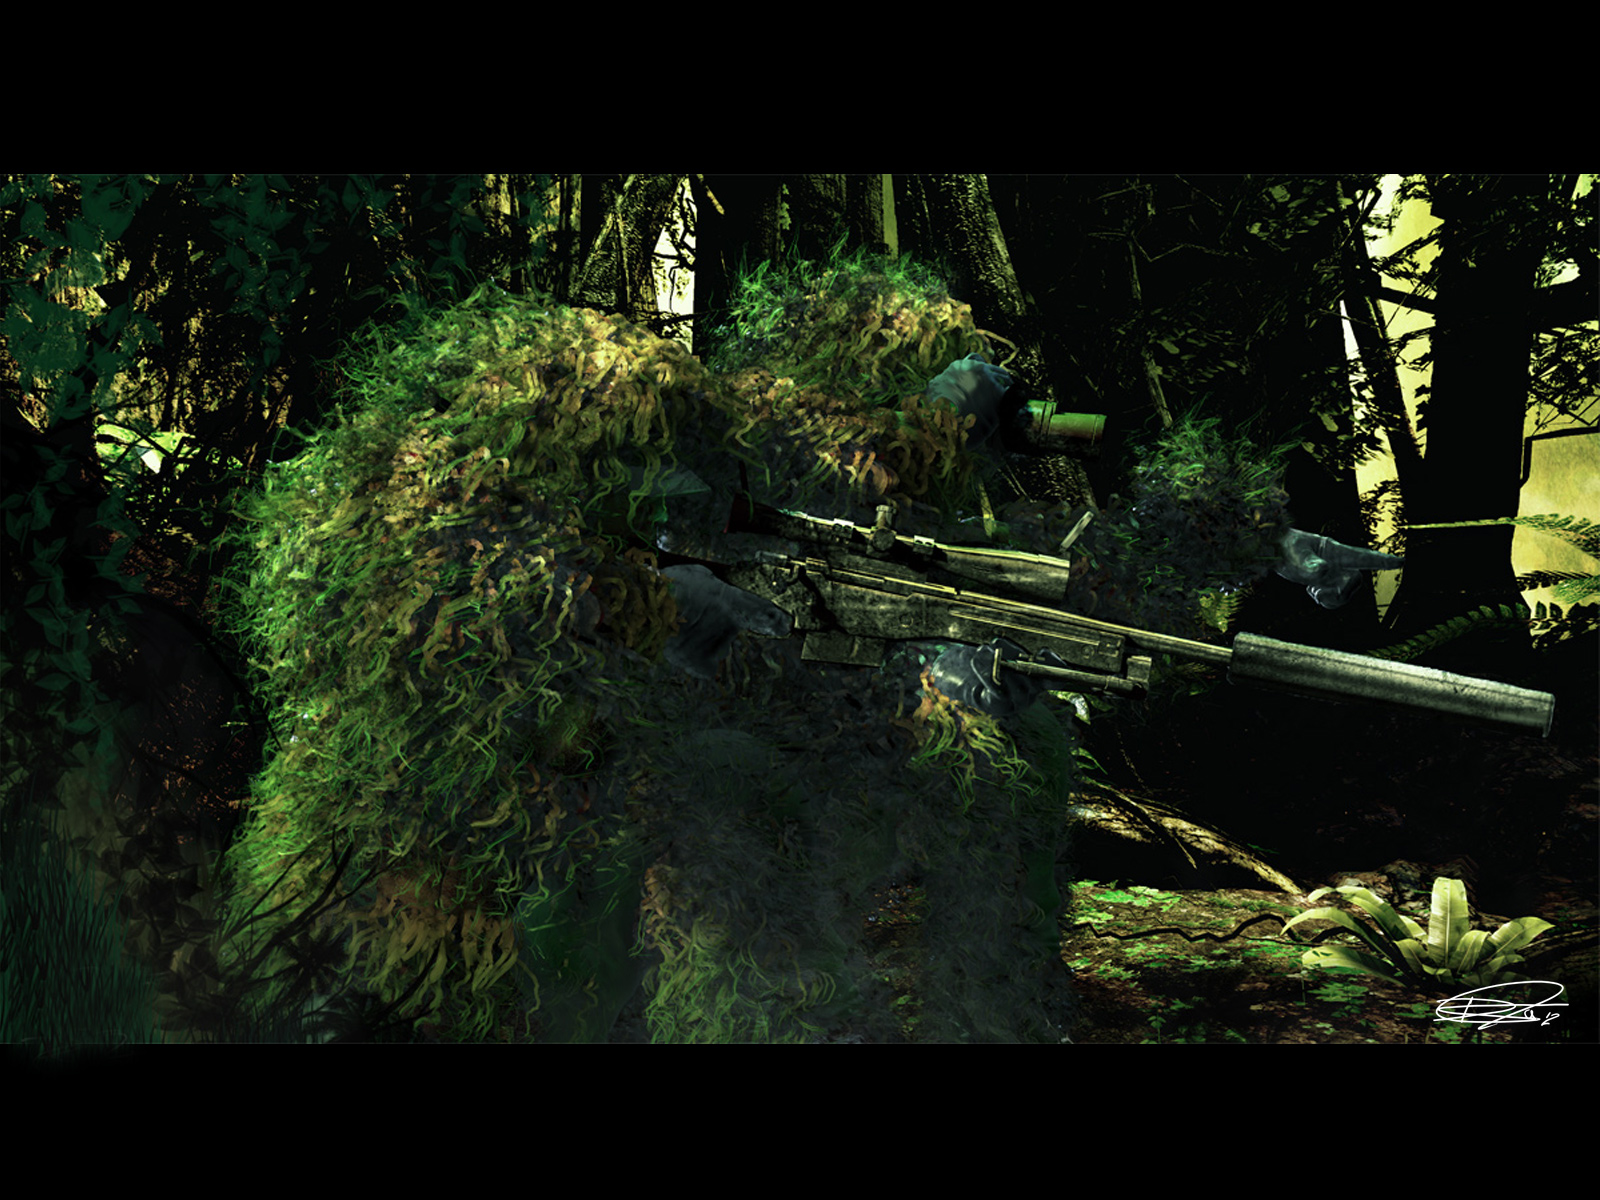 US Marine Scout Sniper Team Computer Wallpapers Desktop Backgrounds 1600x1200